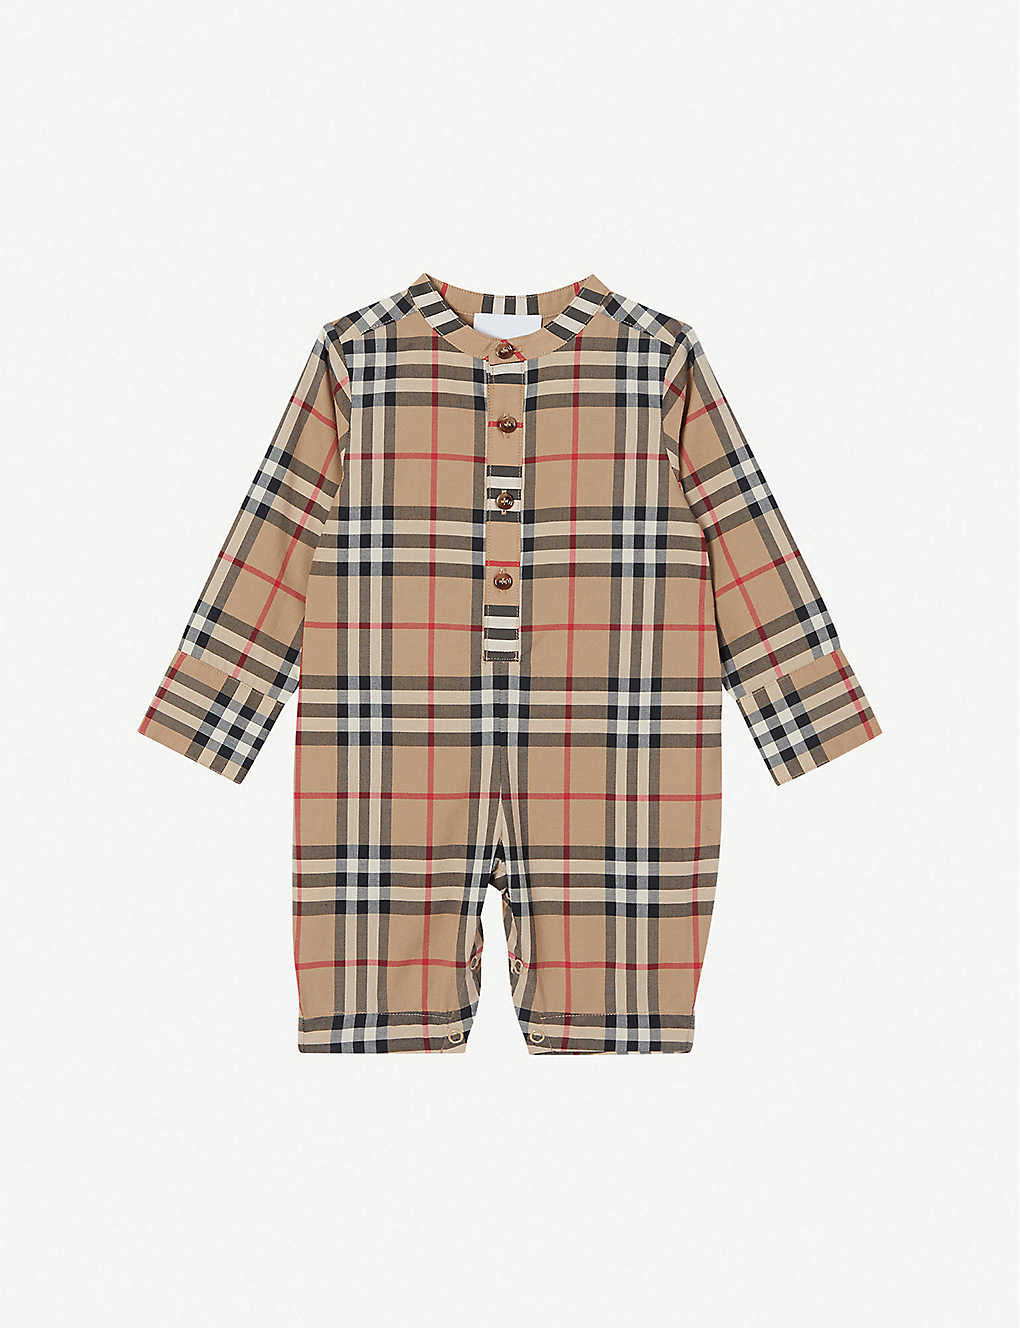 Burberry Babies' Pierre Checked Cotton Jumpsuit 1-12 Months In Archive Beige